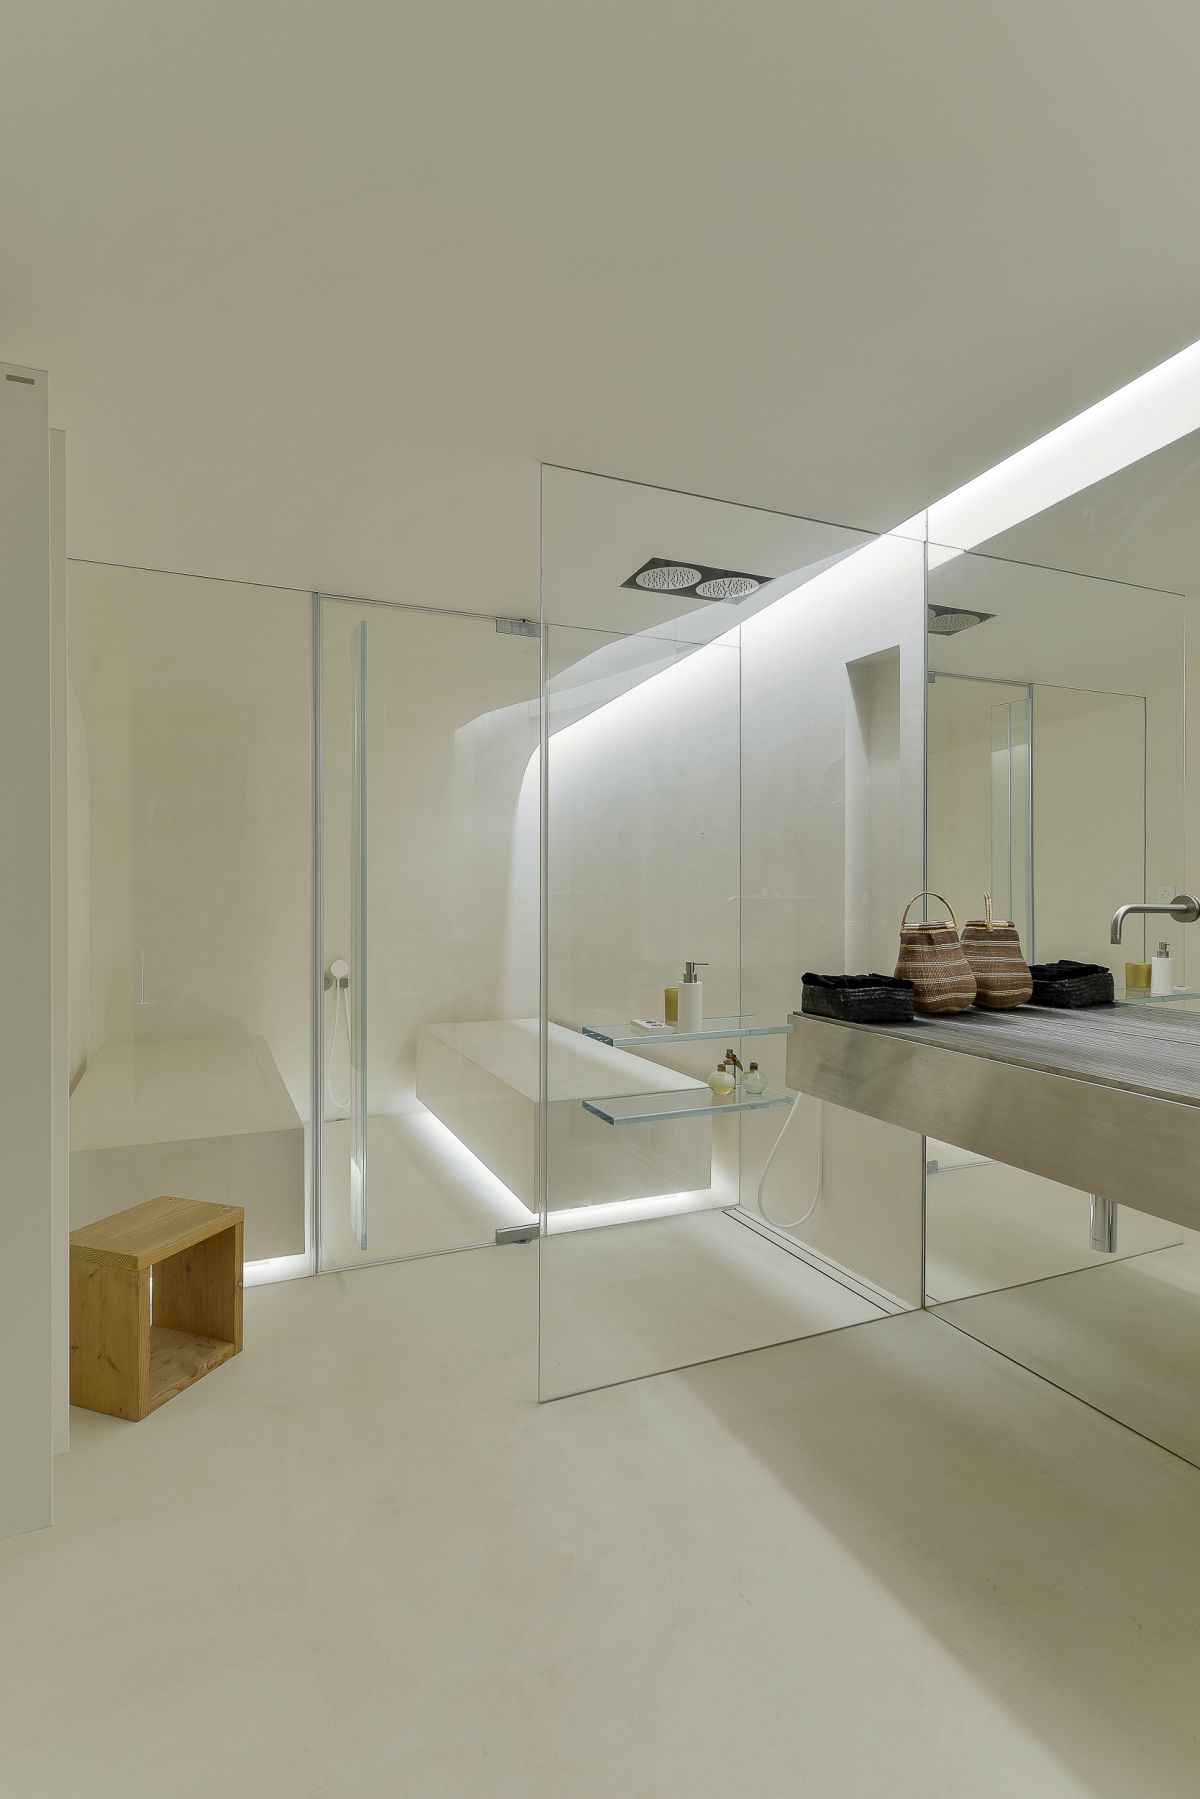 A second bathroom features glass, a full tub and spacious vanity area.